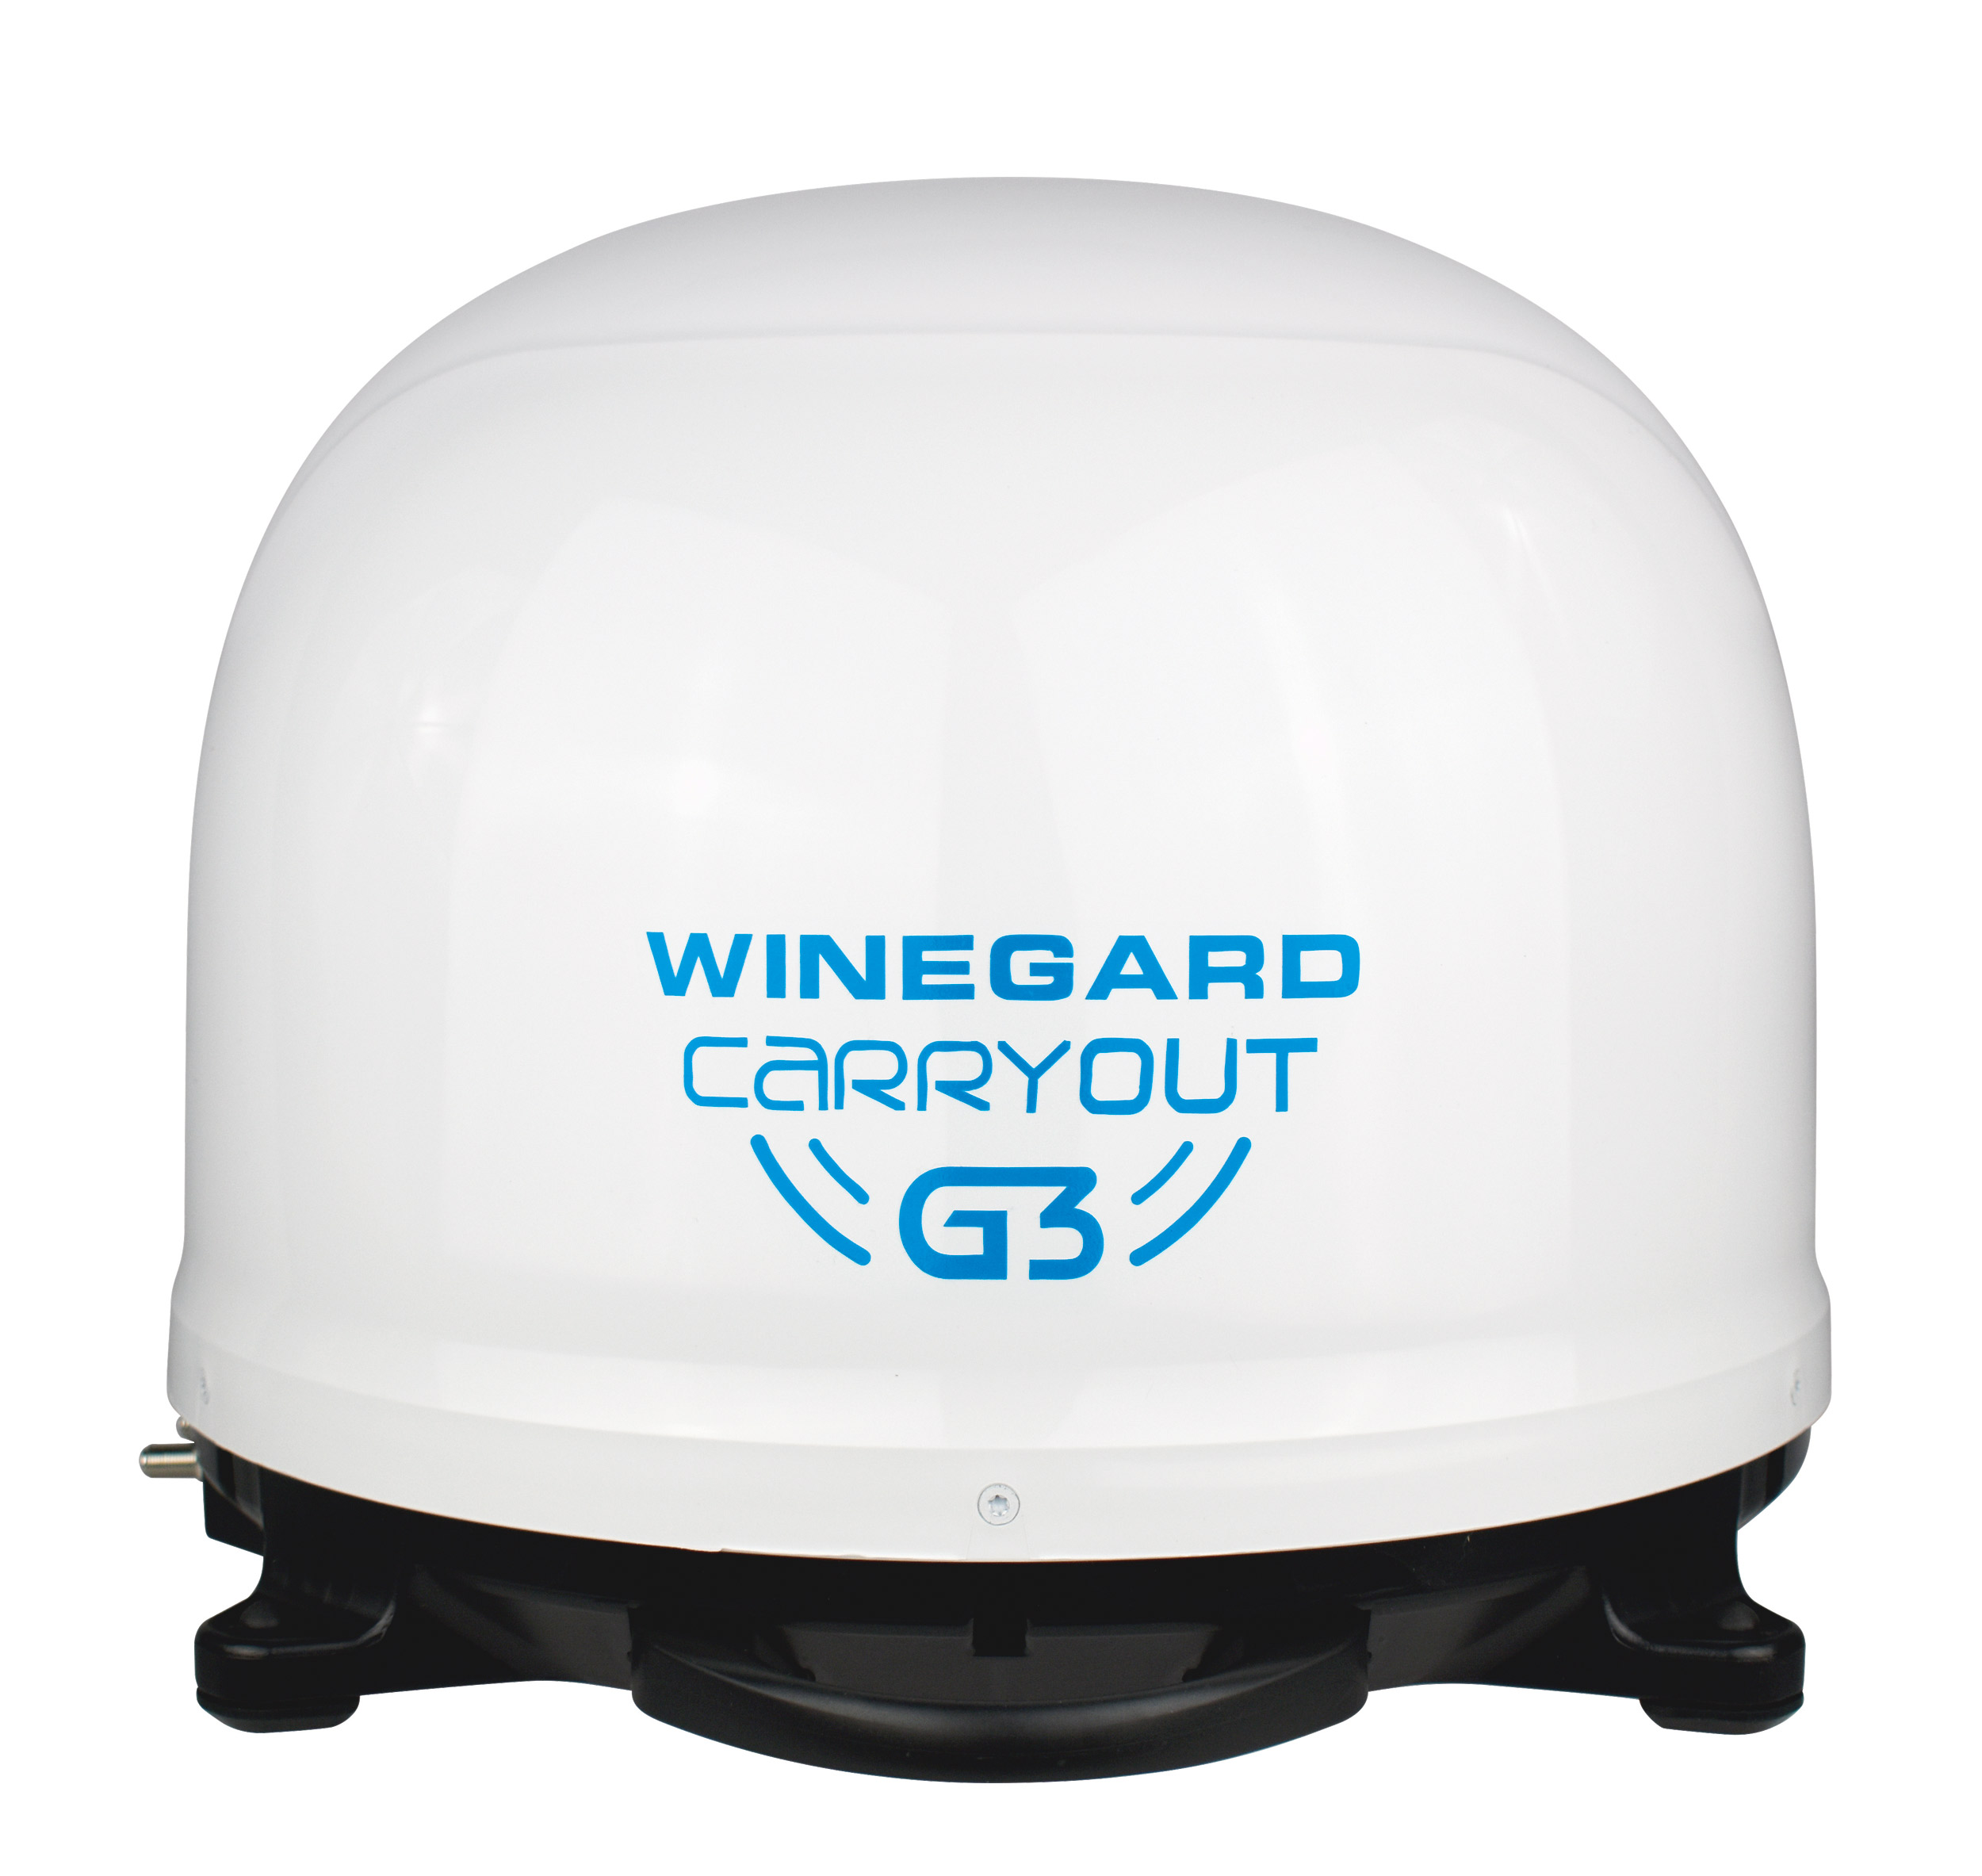 Winegard Carryout G3 Portable Automatic Satellite TV Antenna, White Dome for RVs, Trucks, Tailgating, Camping and Outdoor